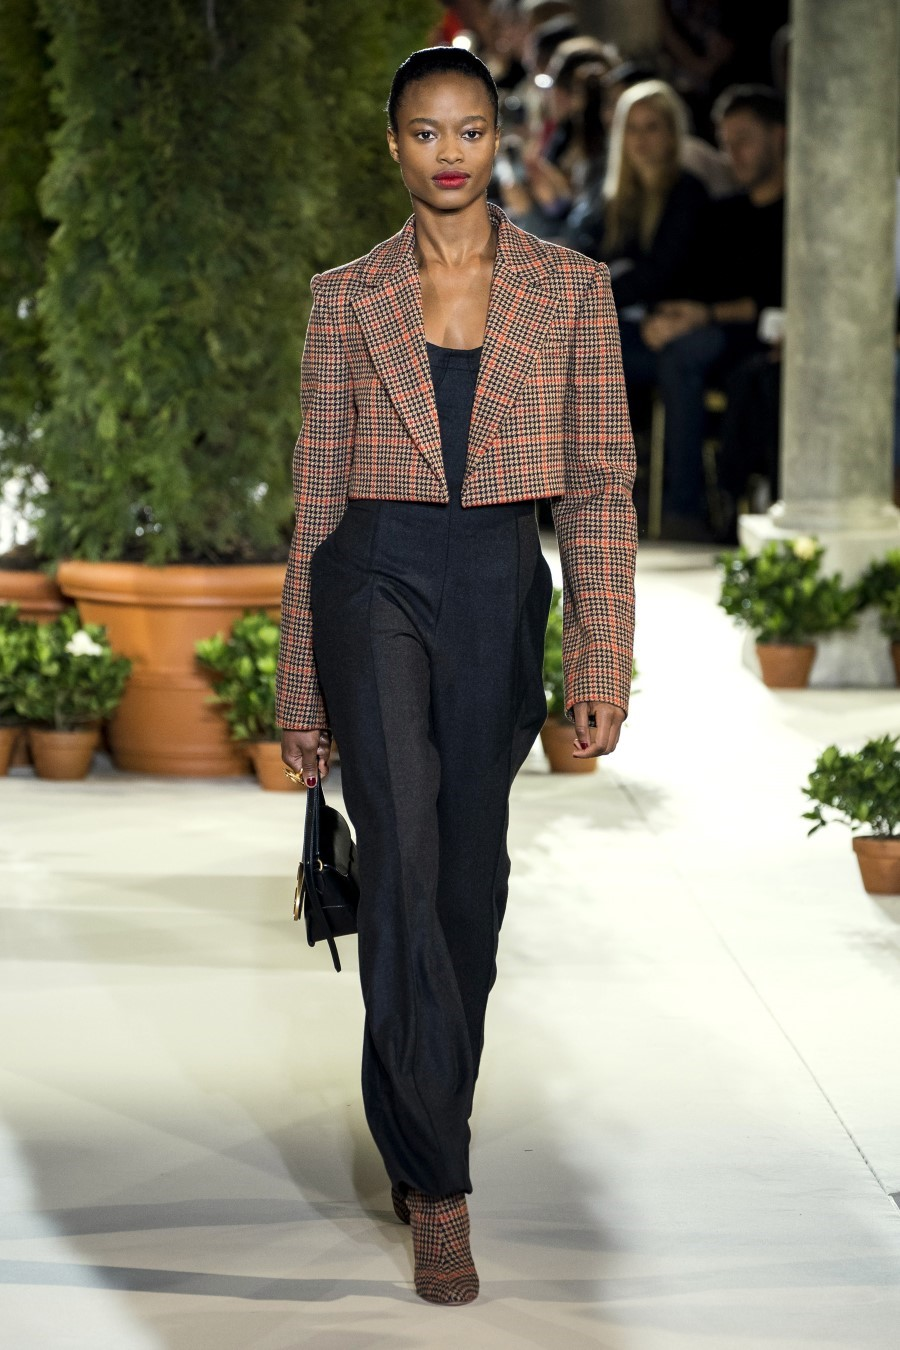 Oscar de la Renta Fall Winter 2019 - New York Fashion Week